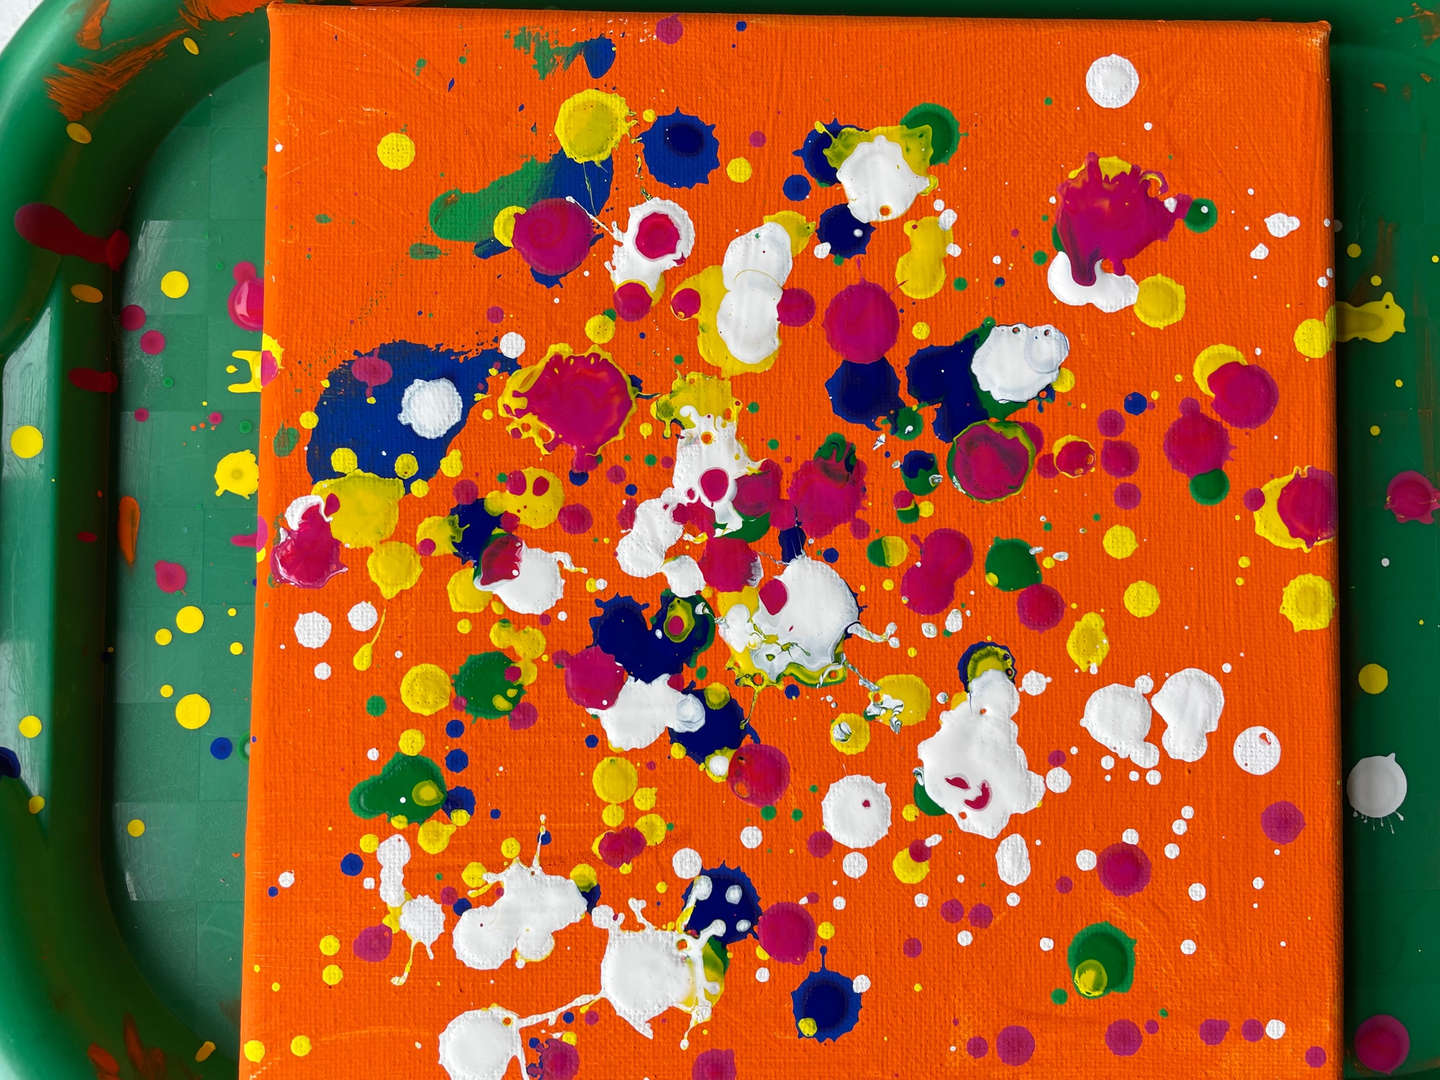 Pollock-style paint drops on orange canvass is complete